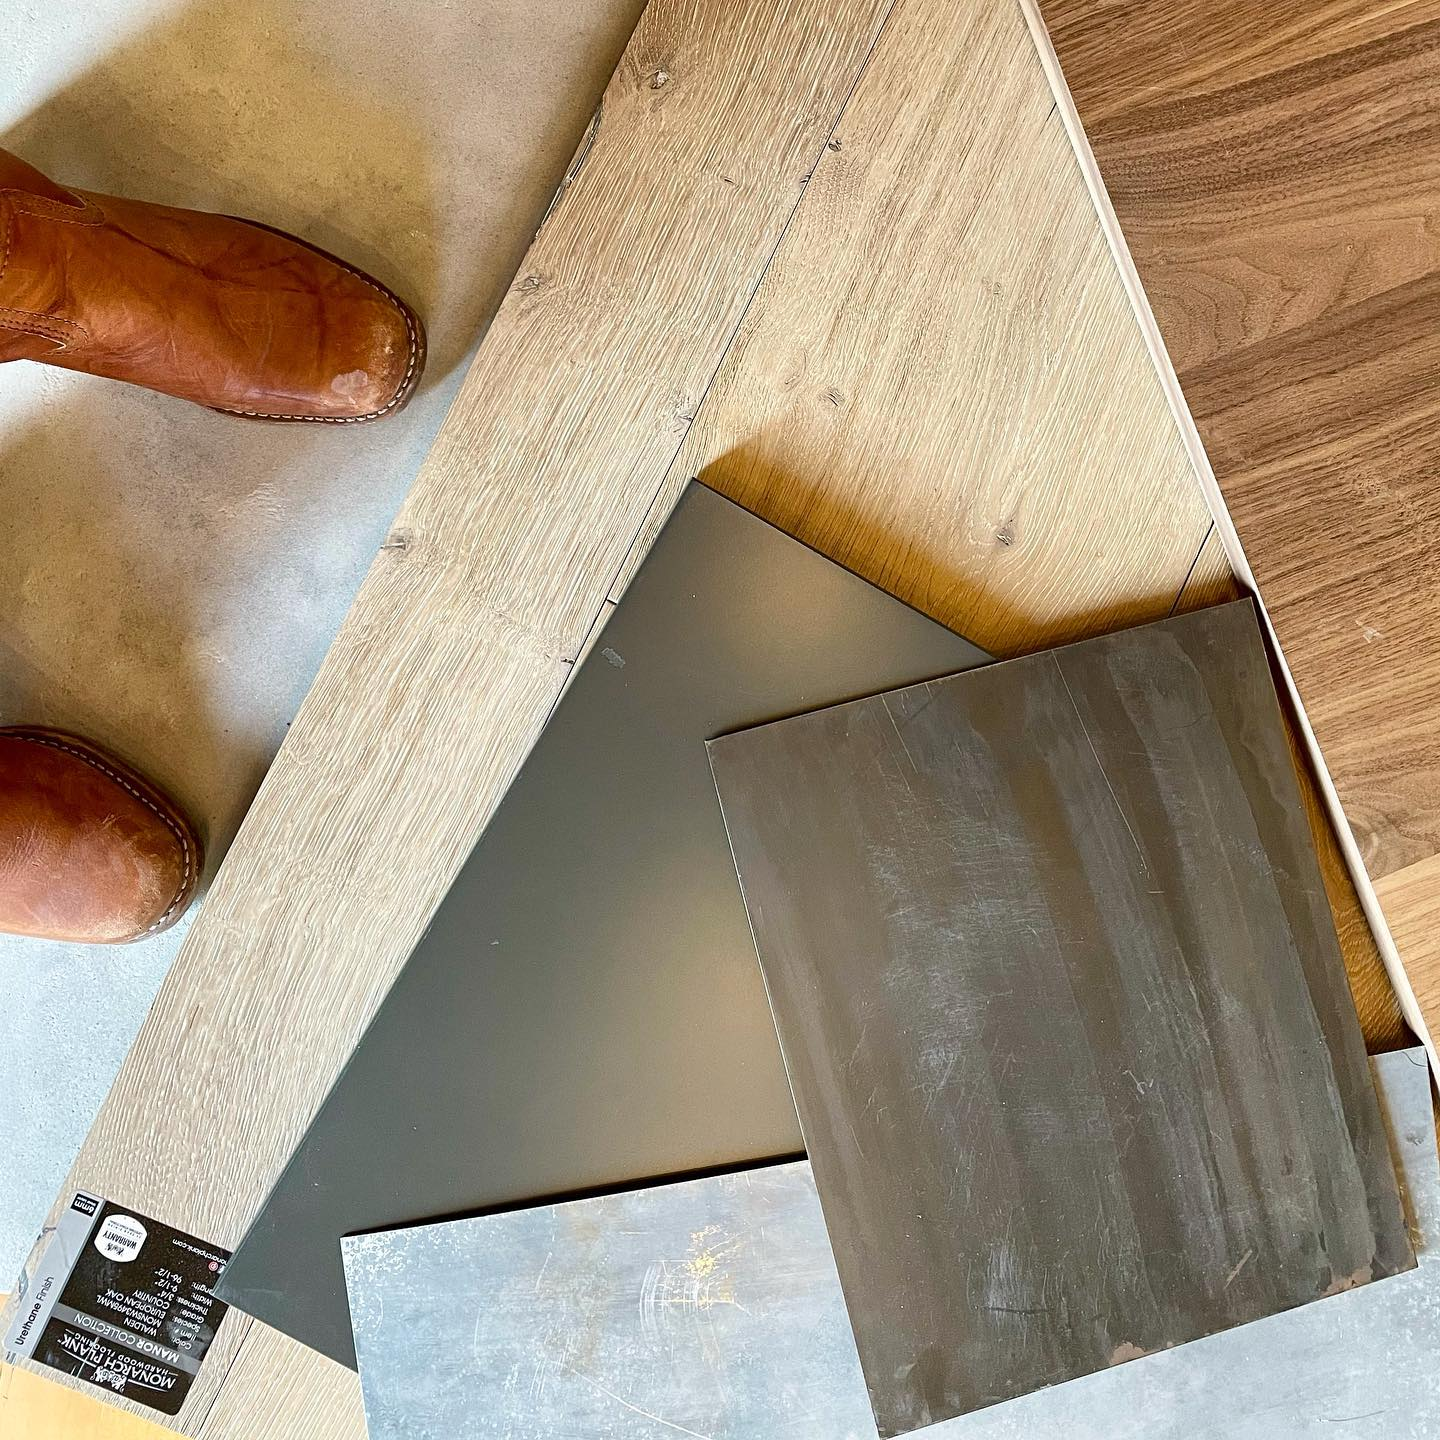 Color pallet of the day...whitewashed oak flooring, iron ore and rustic walnut cabinets, gun-blued steel hood, zinc countertops (and Frye boots ) @awiwoodworks @cmtfabrication whitefish custom home builder